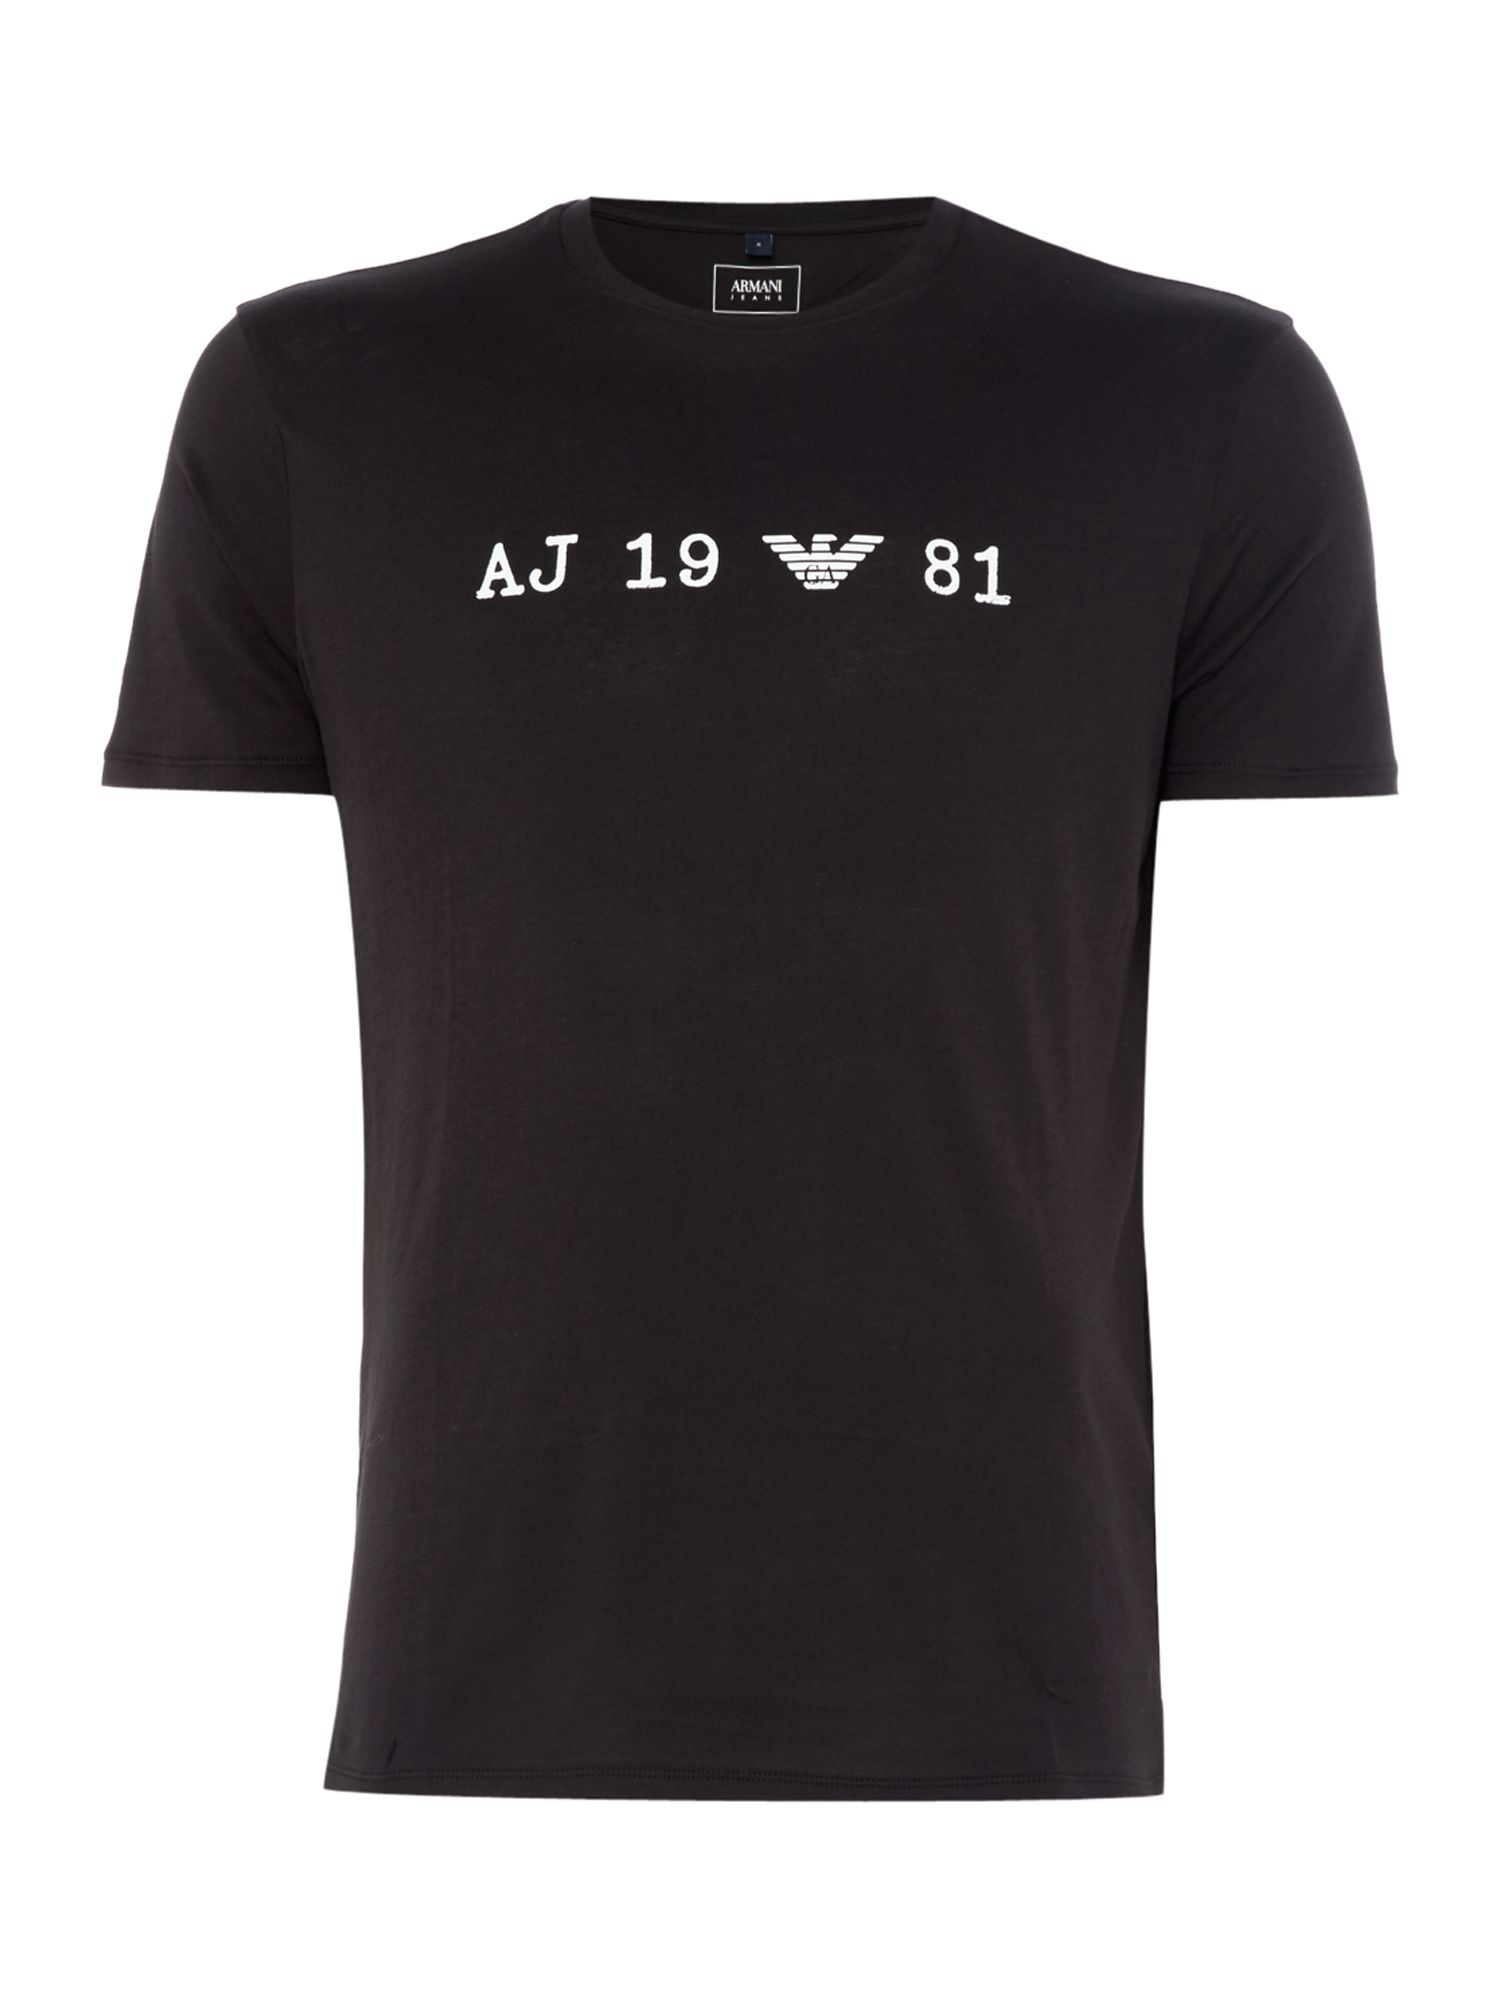 Mens Armani Jeans Regular fit text logo tshirt Black